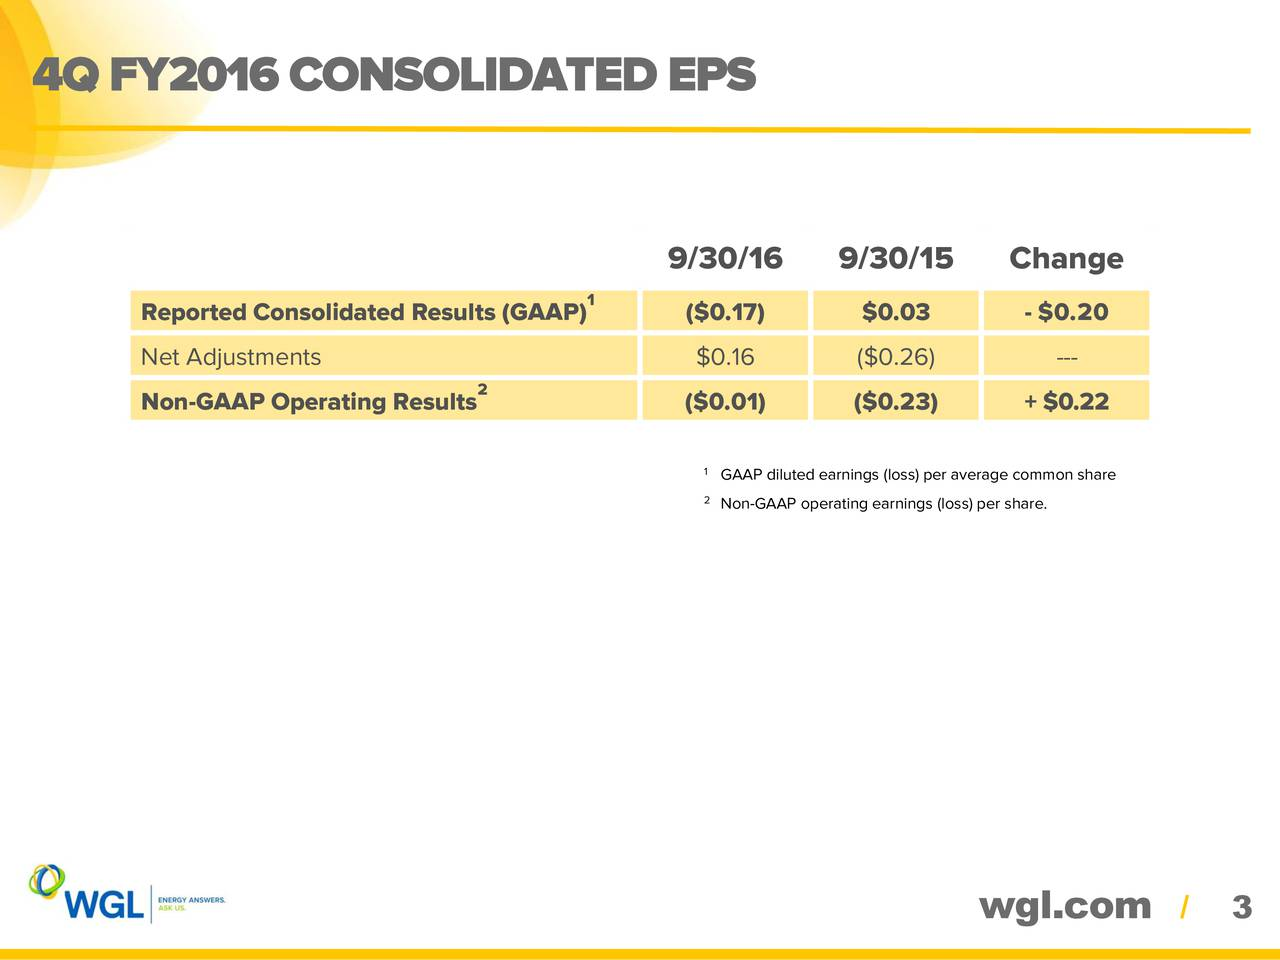 9/30/16 9/30/15 Change 1 Reported Consolidated Results (GAAP) ($0.17) $0.03 - $0.20 Net Adjustments $0.16 ($0.26) --- Non-GAAP Operating Results 2 ($0.01) ($0.23) + $0.22 1GAAP diluted earnings (loss) per average common share 2Non-GAAP operating earnings (loss) per share. wgl.com / 3